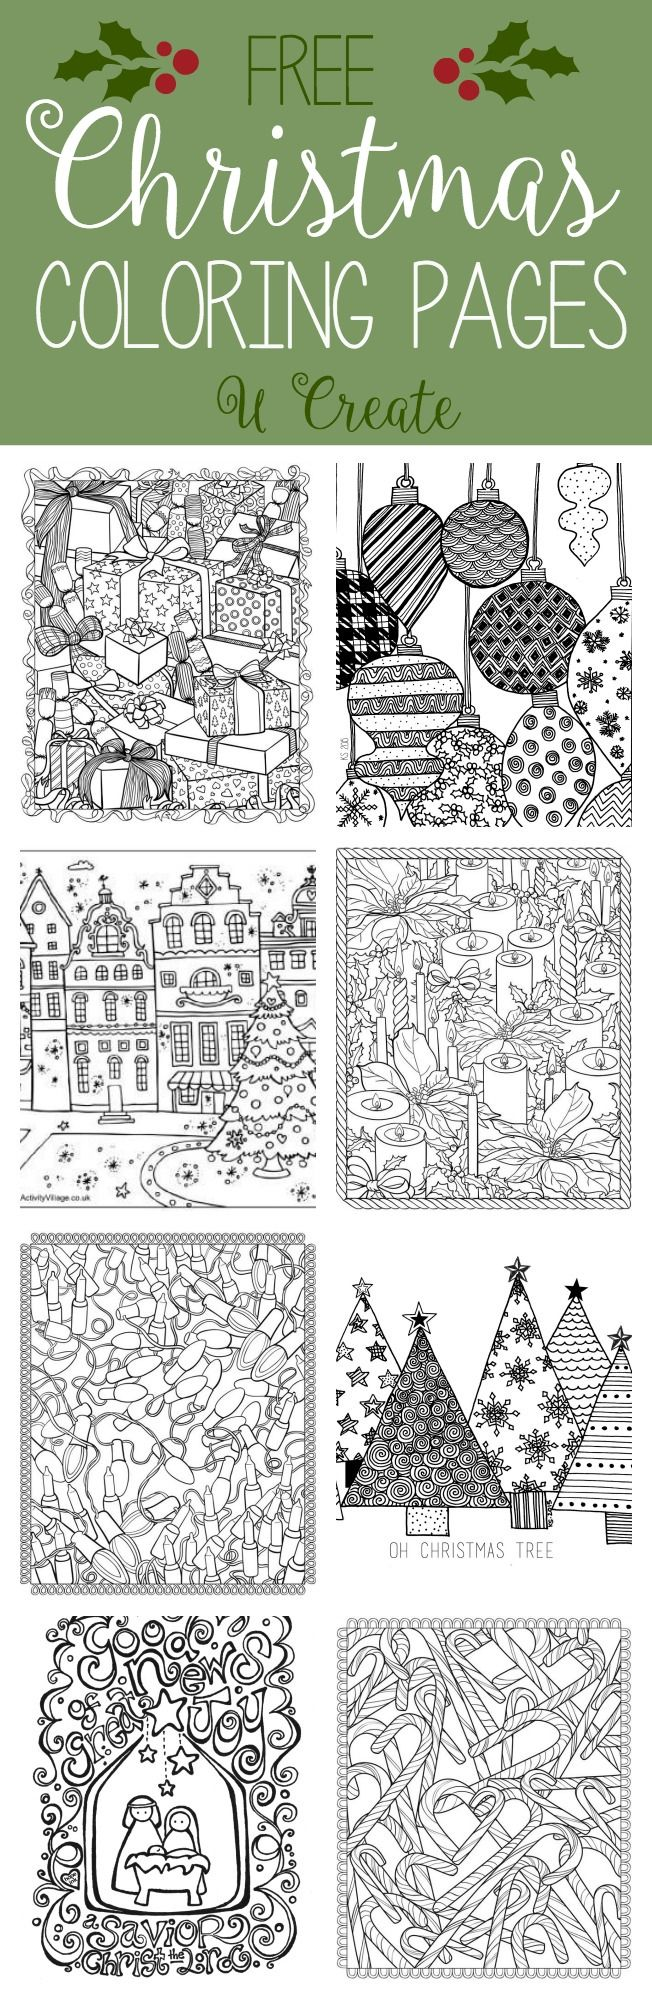 Free Christmas Adult Coloring Pages (U Create) | Projects to Try ...